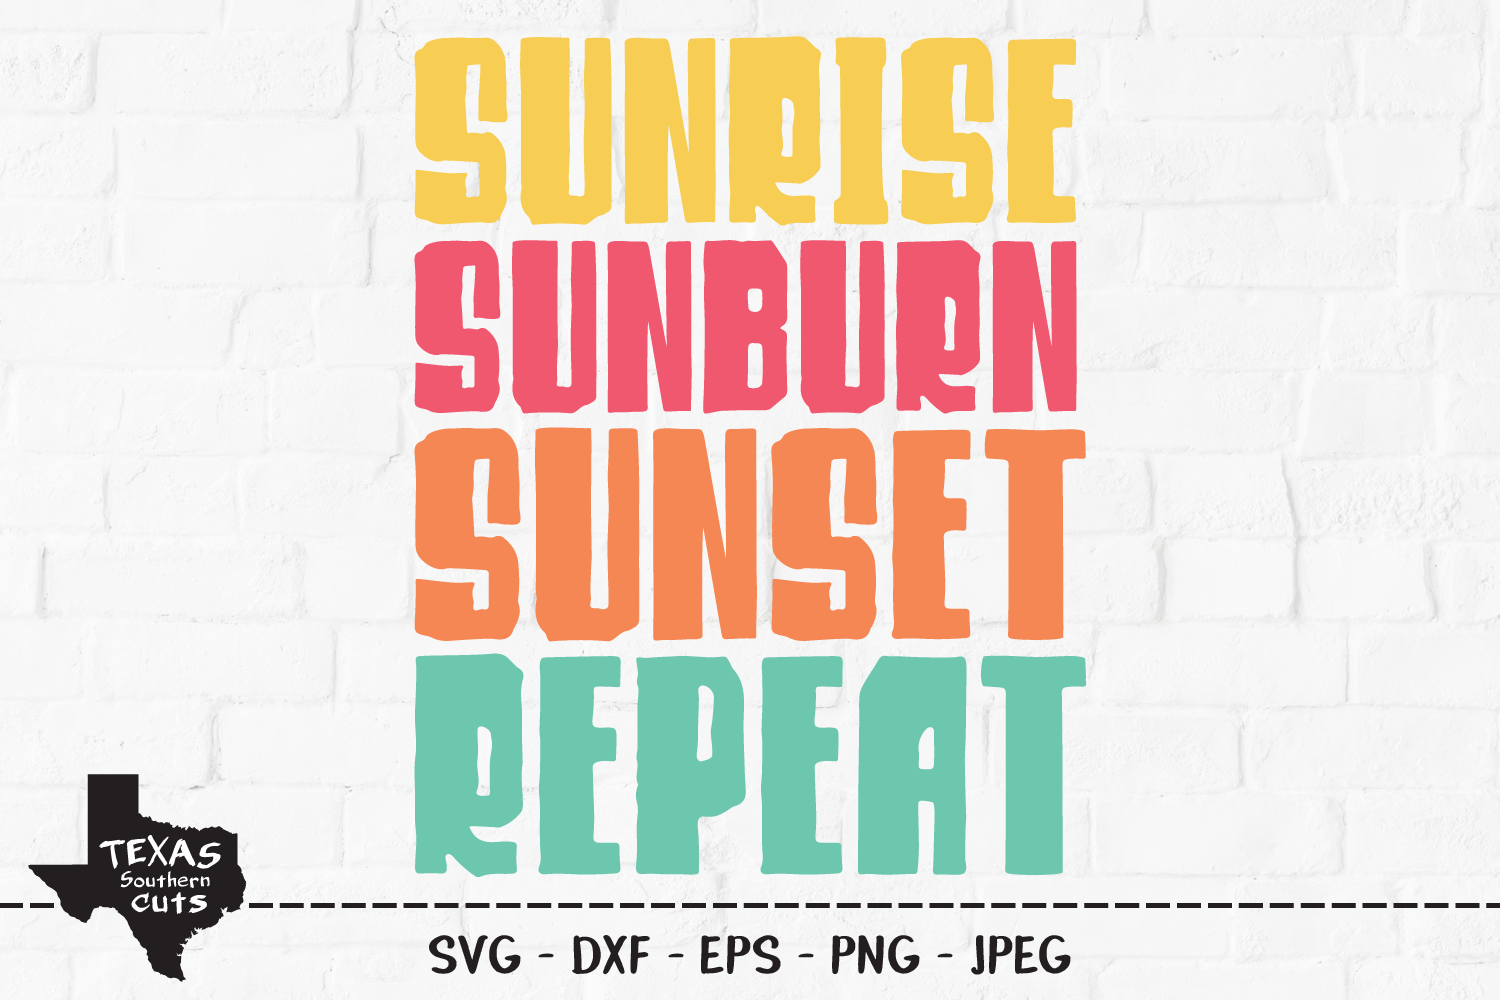 Download Free Sunrise Sunburn Sunset Repeat Graphic By Texassoutherncuts for Cricut Explore, Silhouette and other cutting machines.